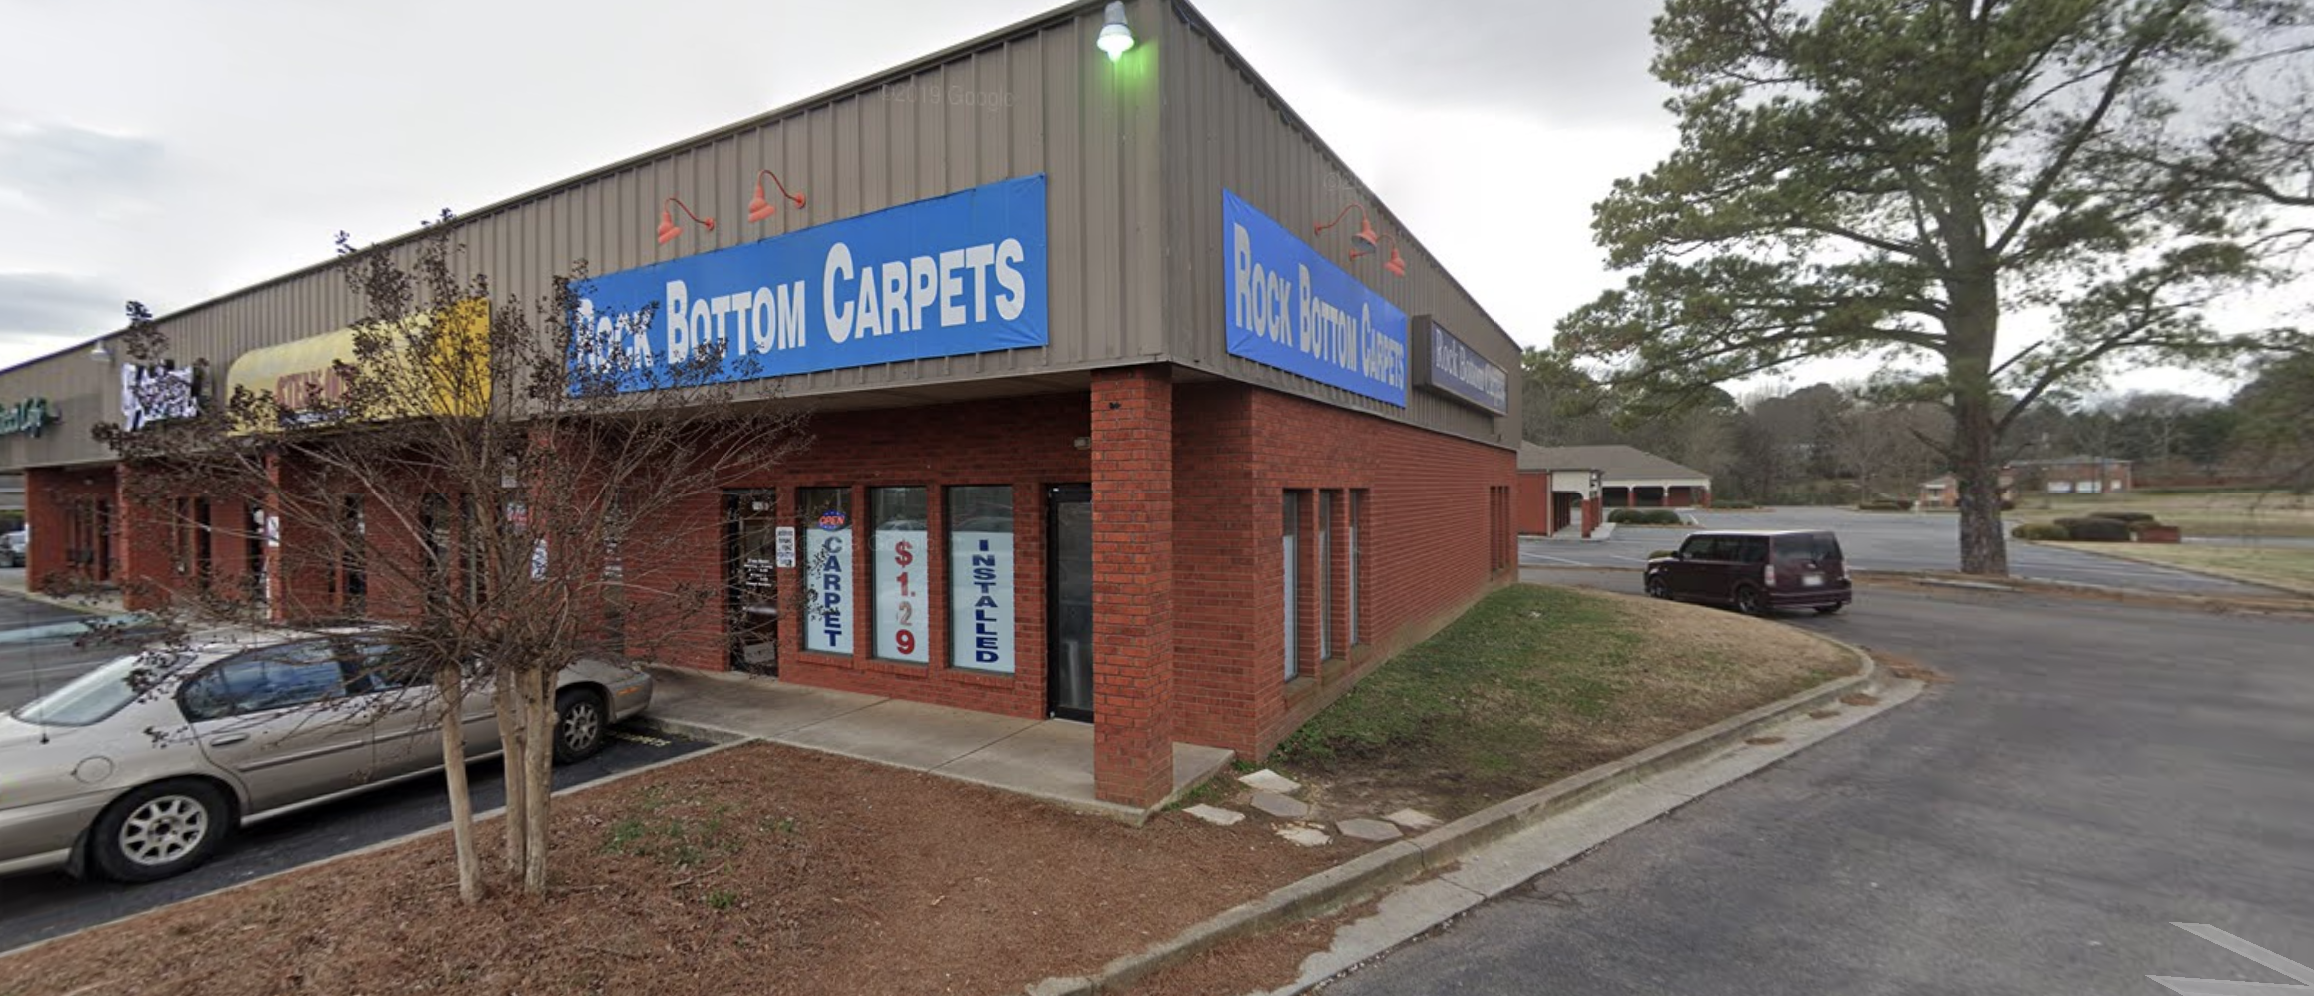 Rock Bottom Carpets - 2109 Bob Wallace Ave SW, Huntsville, AL 35805